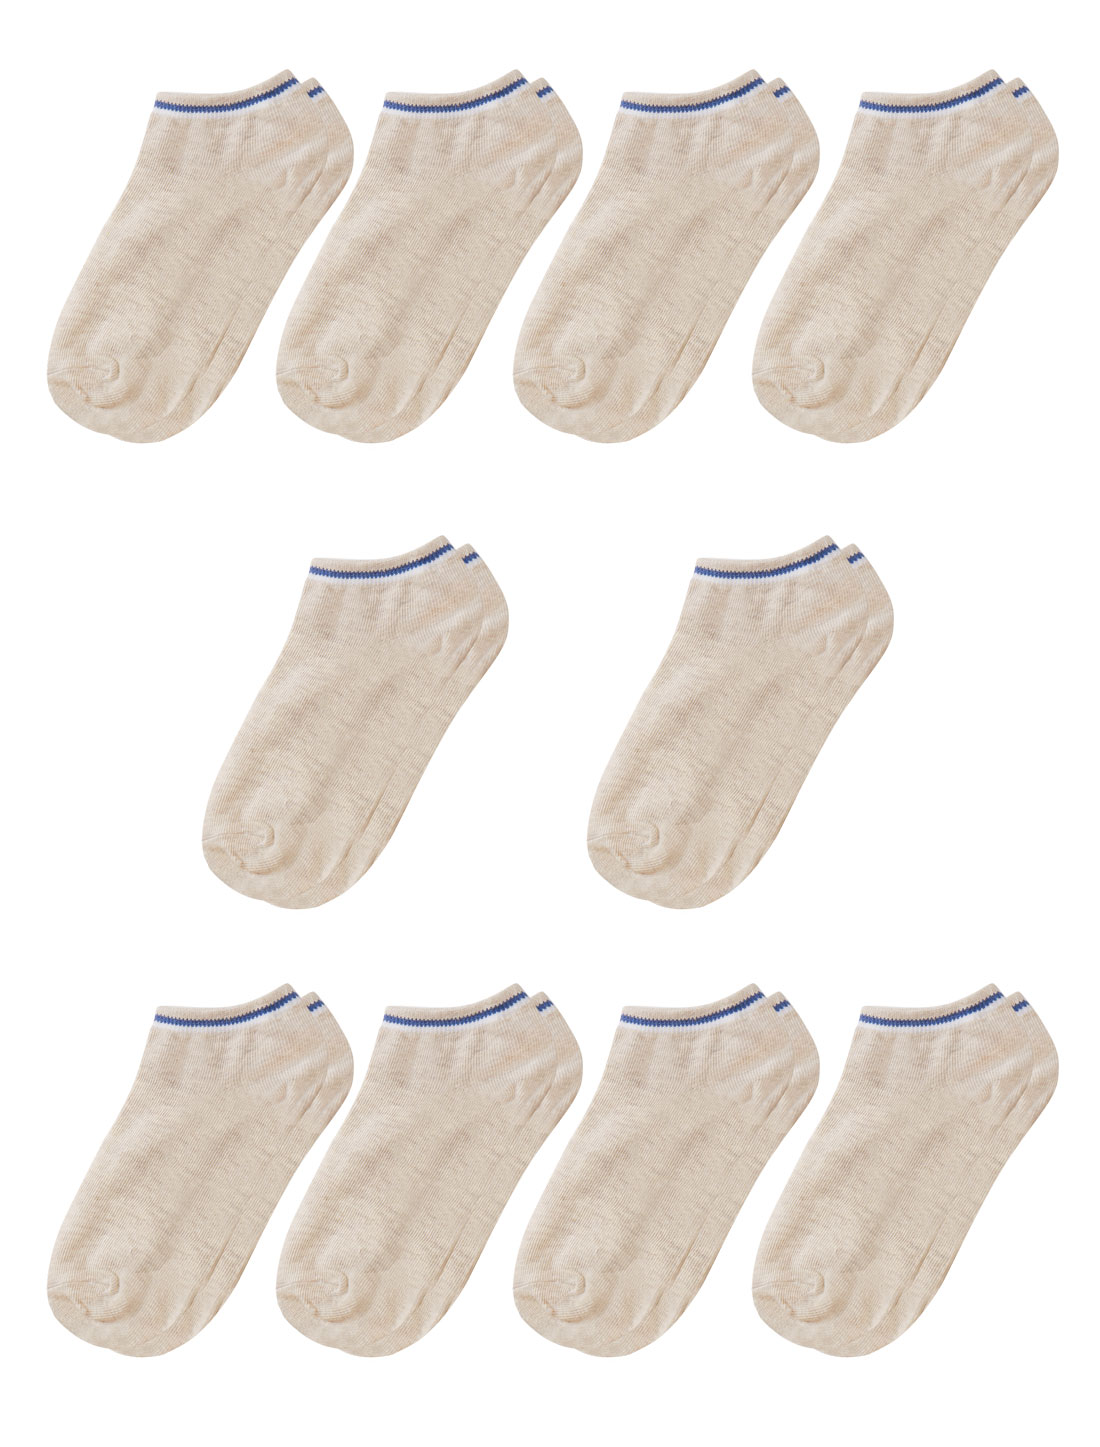 Women Low Cut Elastic Cuffs Ankle Length Short Socks 10 Pairs Beige